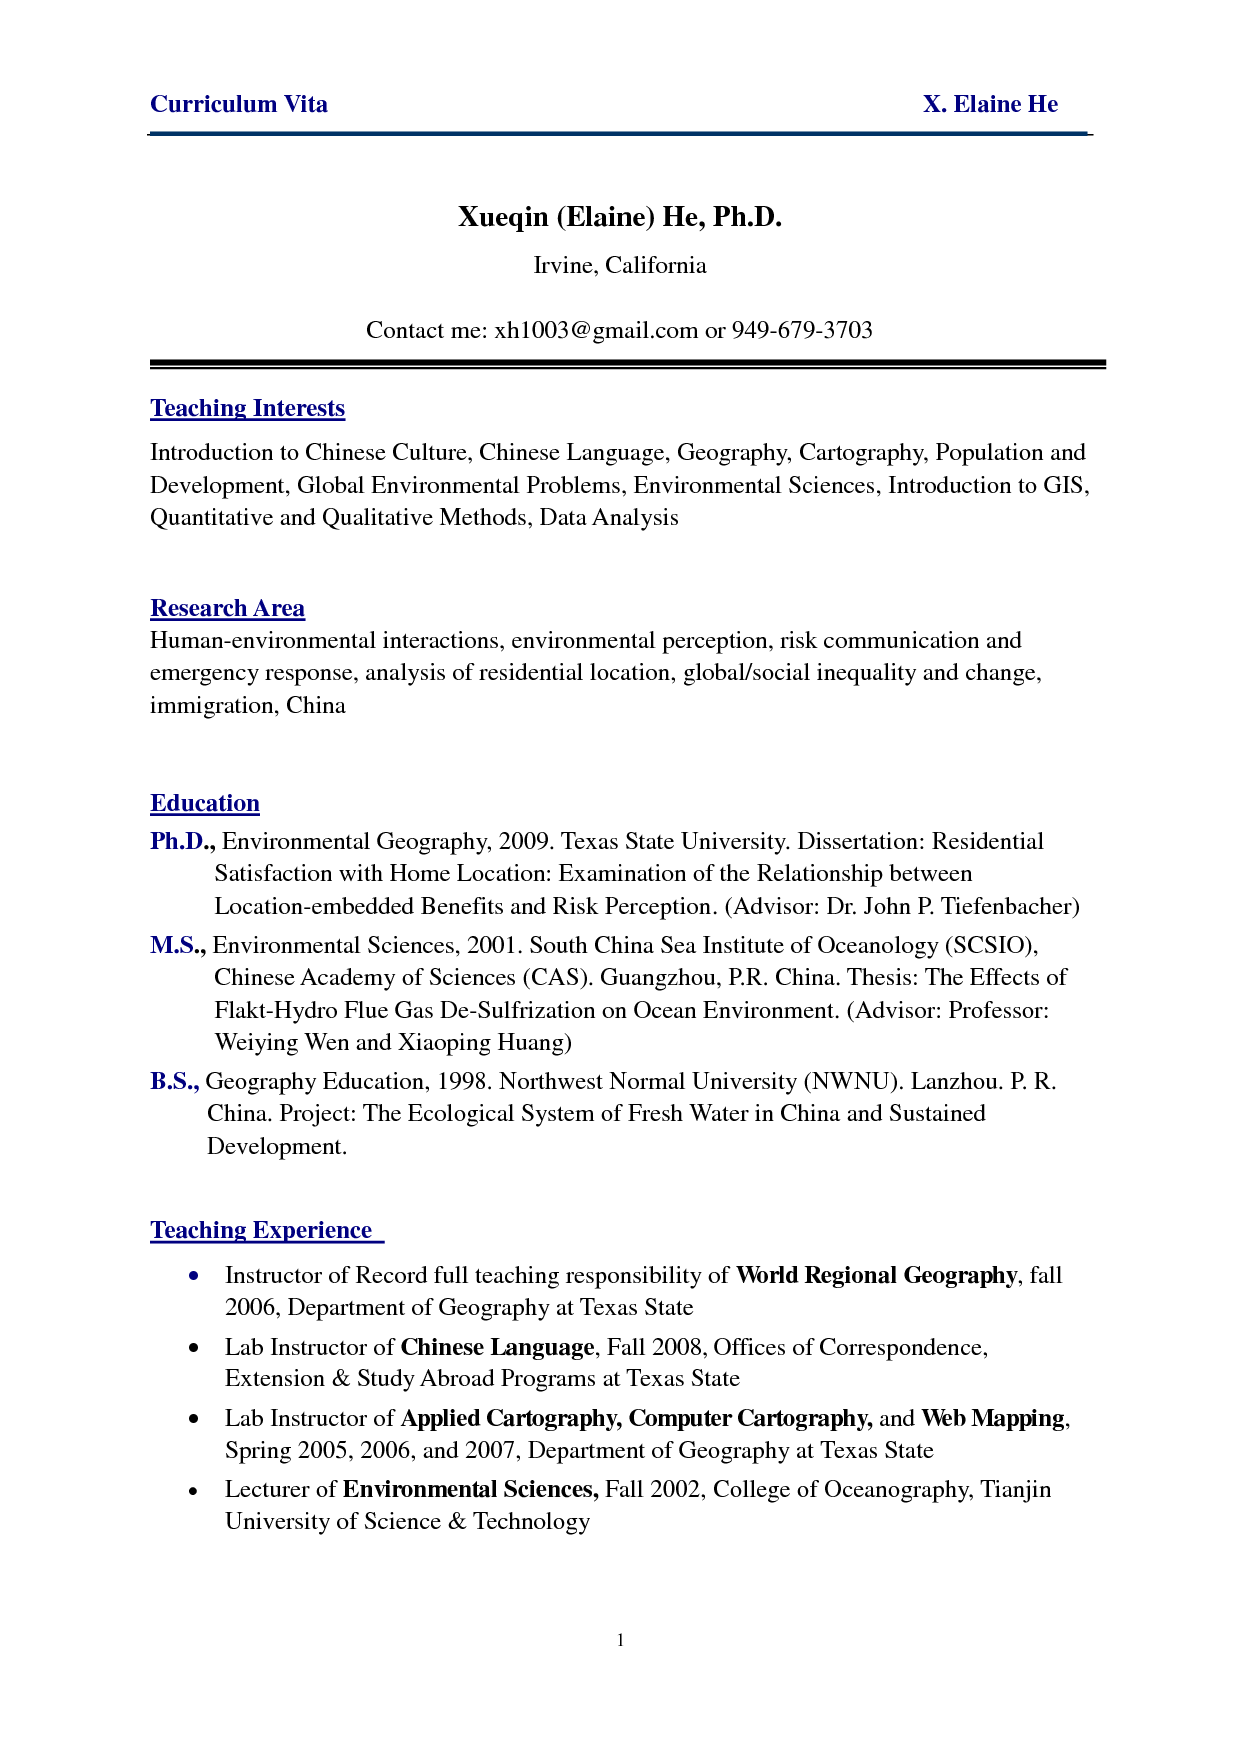 New Grad Lpn Resume Sample Nursing Hacked Pinterest Resume